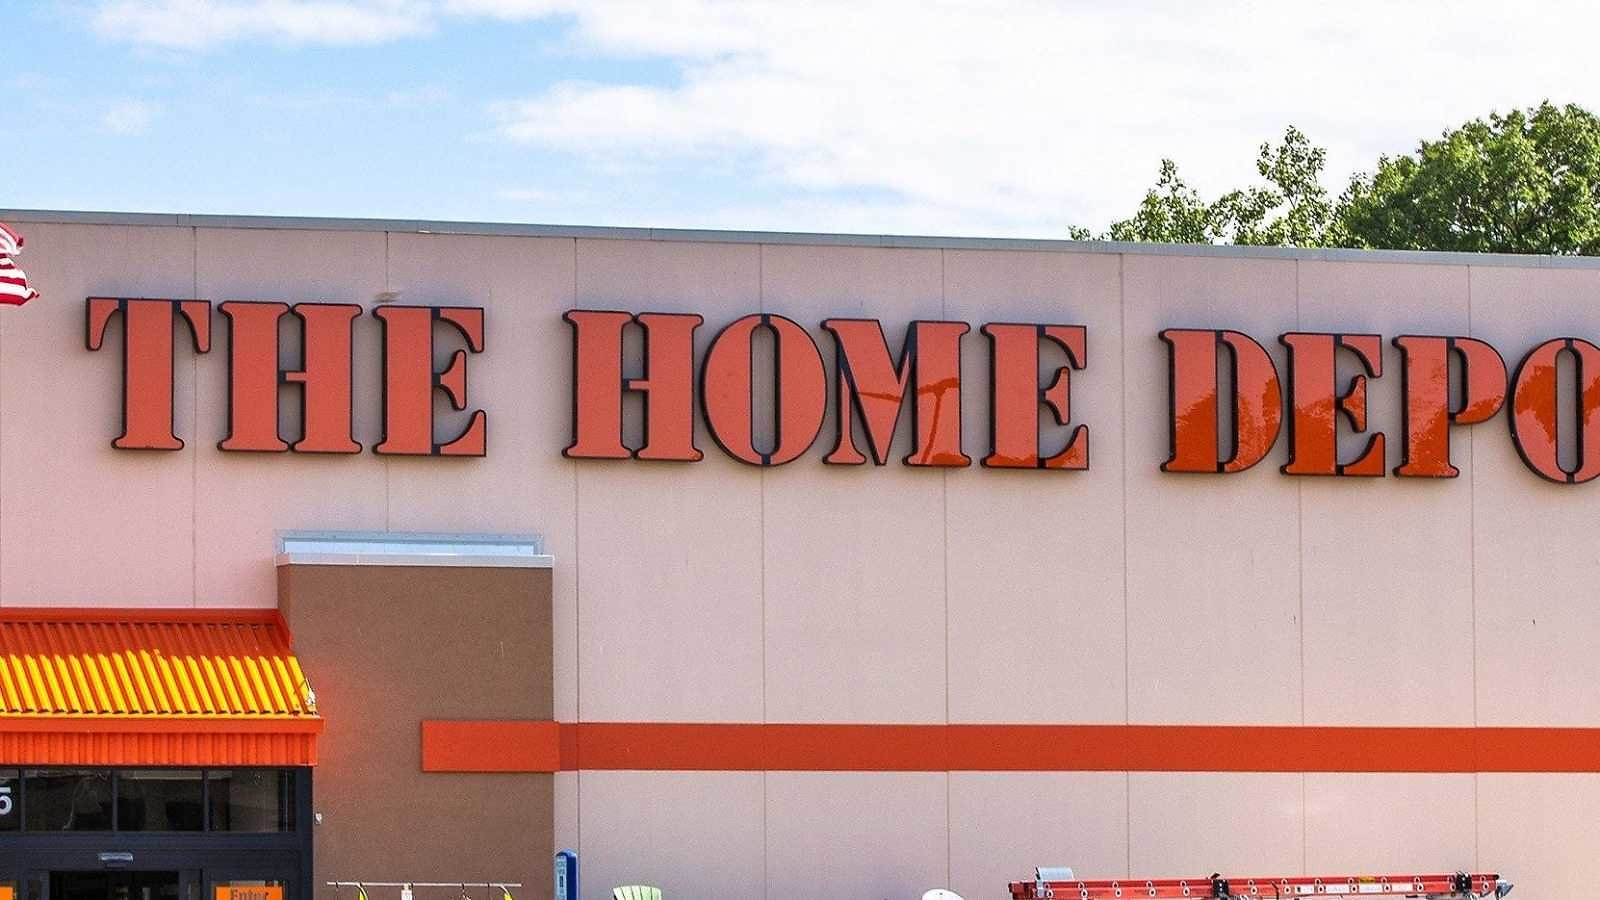 The Home Depot Buying HD Supply in Deal Valued At $8 Billion